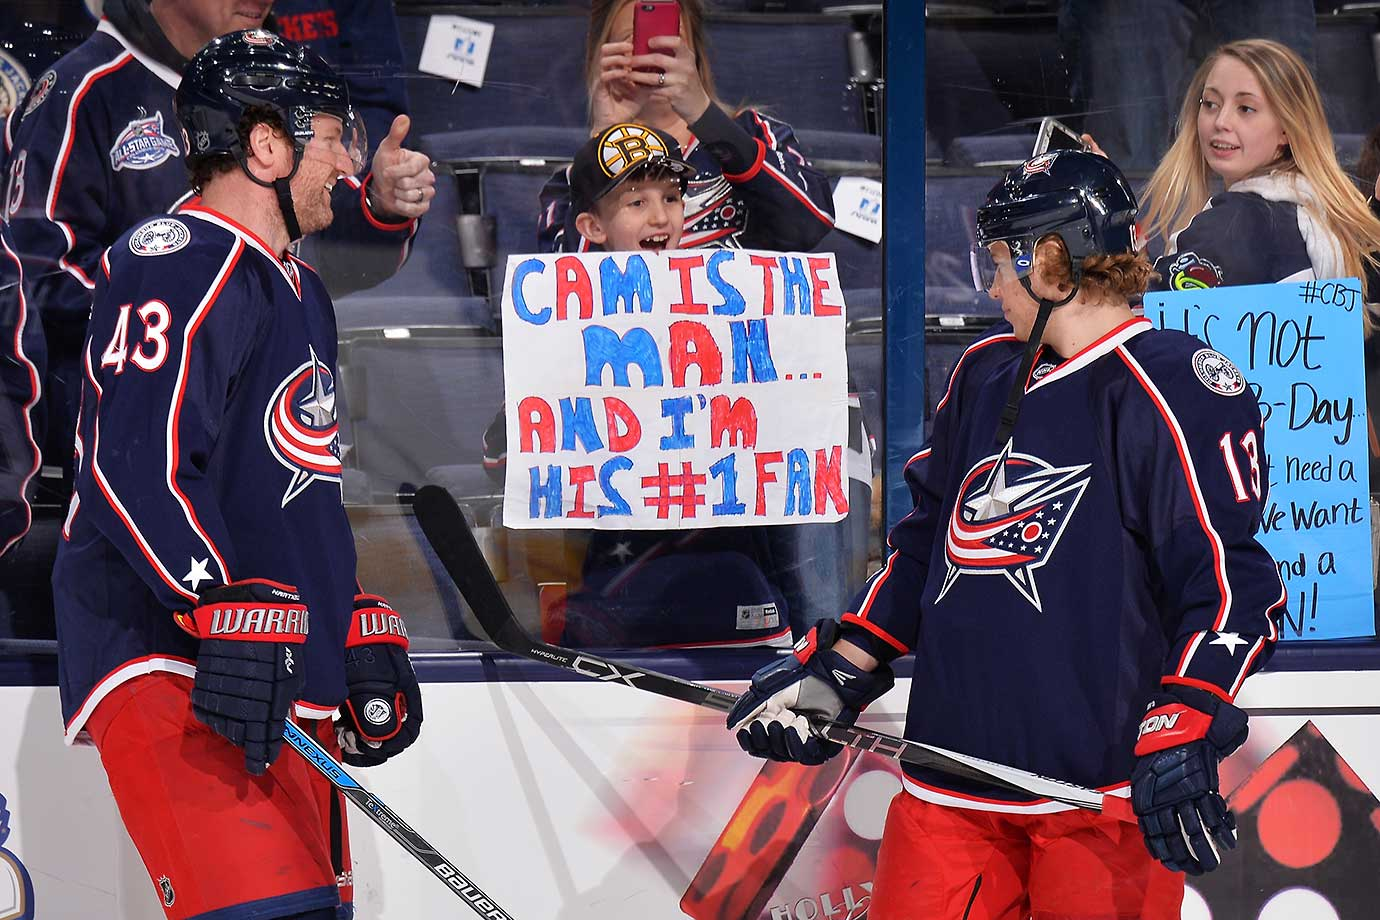 Scott Hartnell, left, and Cam Atkinson of the Columbus Blue Jackets read a sign held by a young fan during warmups.